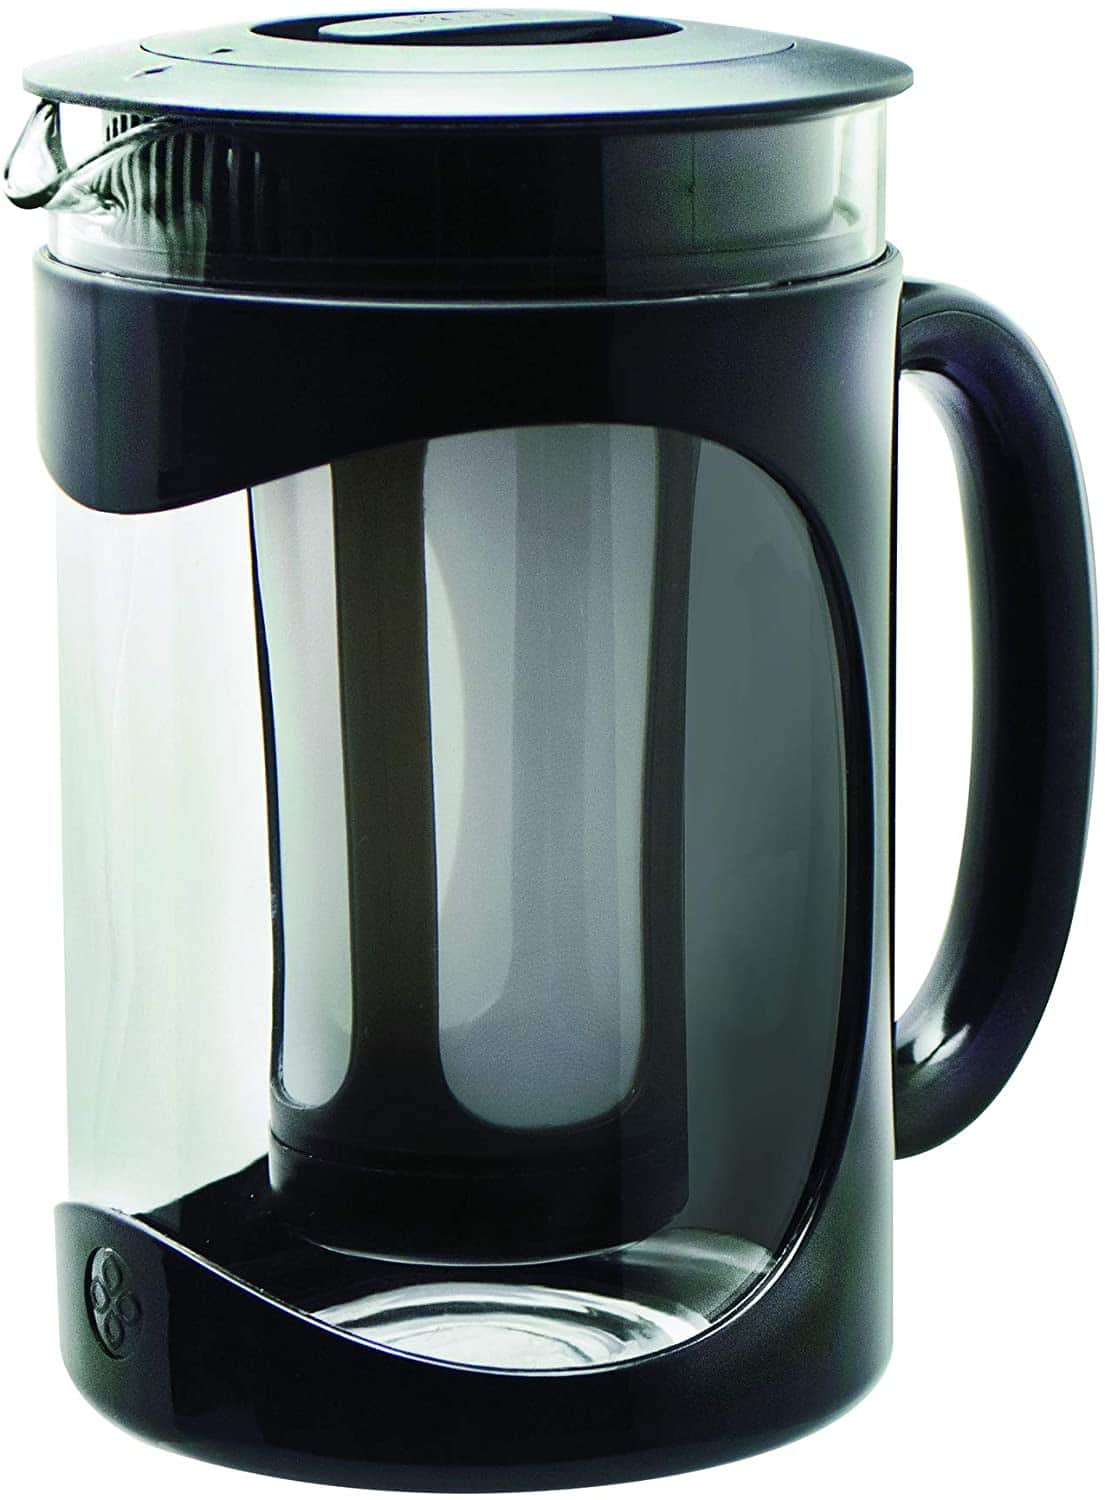 Primula Burke Deluxe Cold Brew Coffee Maker $10 Amazon